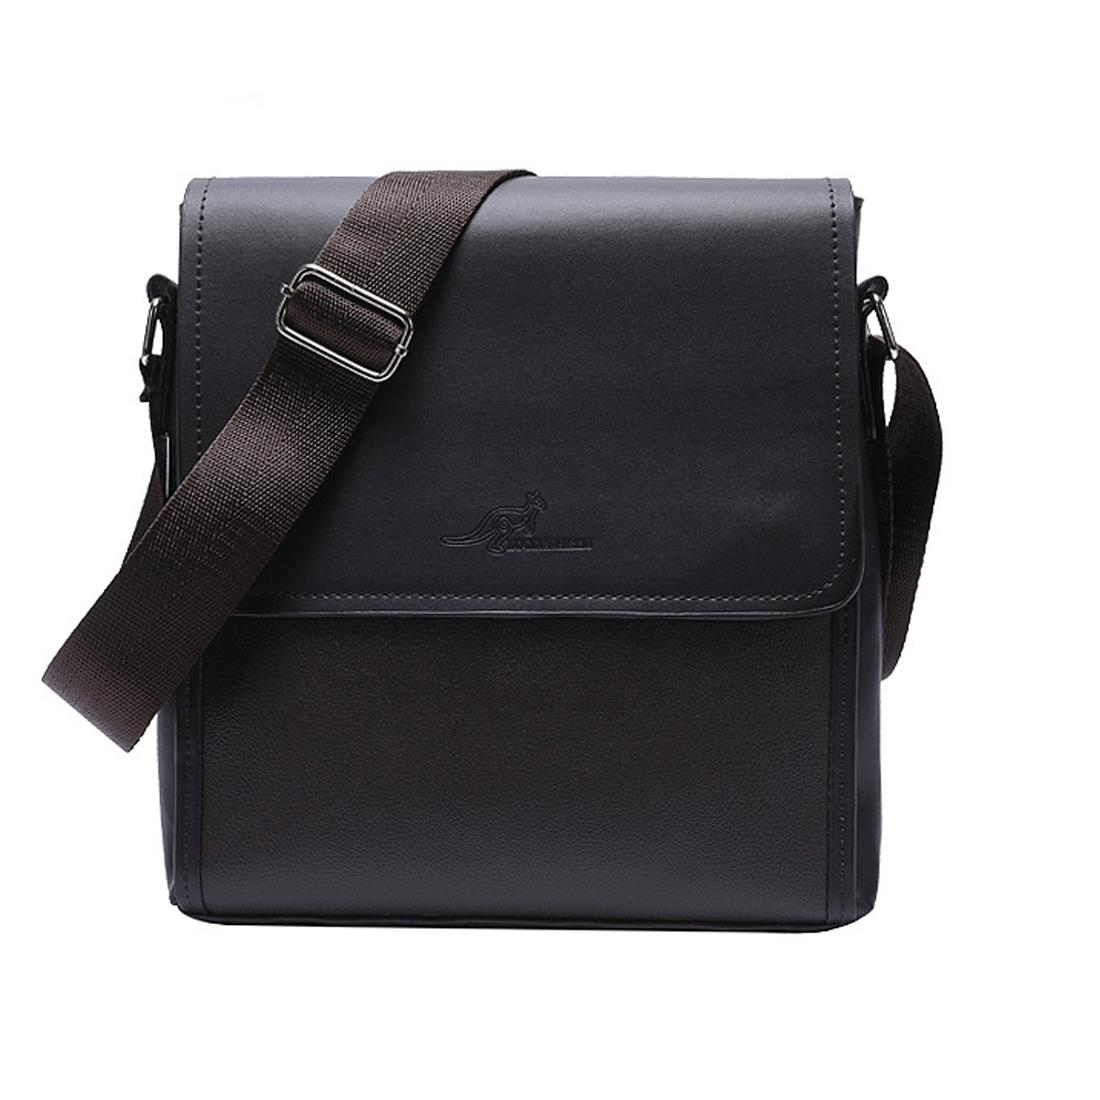 Messenger Bags for sale - Messenger Bags for Men online brands ... d292af279fa95